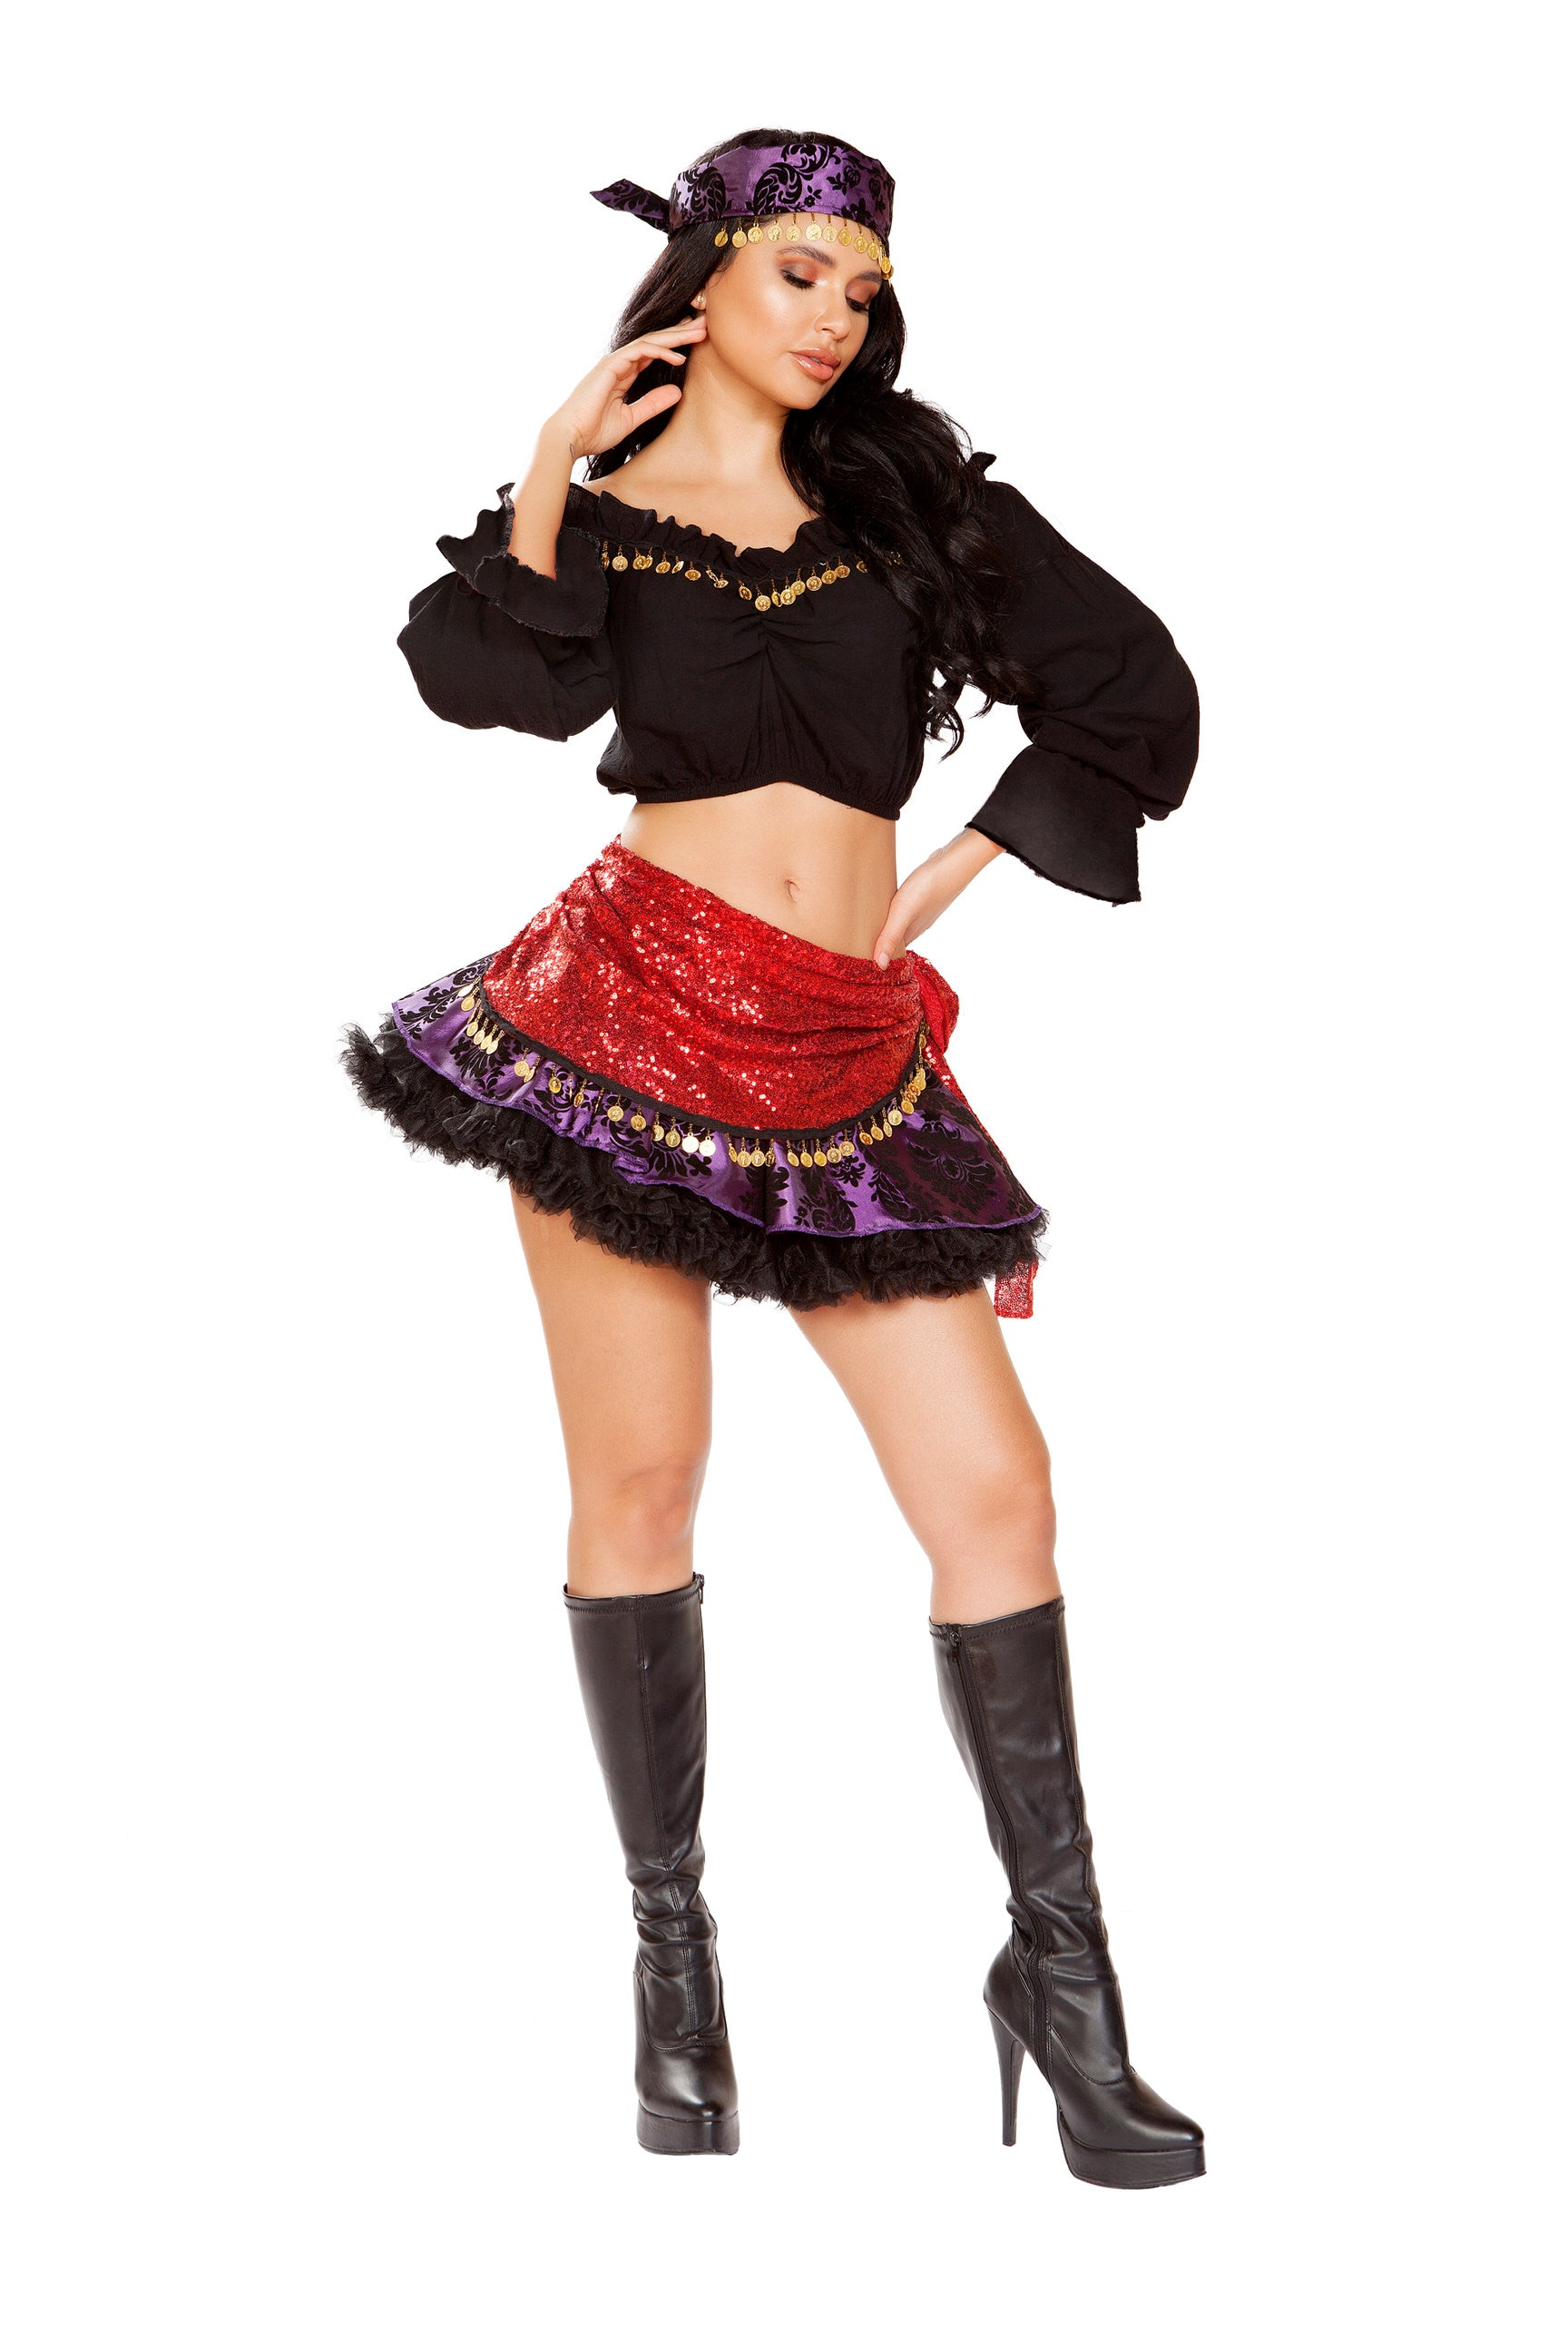 4933 - 4pc Traveling Gypsy ${description} | Roma Costume and Roma Confidential wholesale manufacturer of Women Apparel bulk world wide wholesale and world wide drop ship services for Adult Halloween Costumes, Sexy and Elegant Lingerie, Rave Clothing, Club wear, and Christmas Costumes. Costumes, Roma Costume, Inc., Roma Costume, Roma Confidential, Wholesale clothing, drop ship, drop ship service, Wholesale Lingerie, Wholesale Adult Halloween Costumes, Rave Clothing, EDM Clothing, Festival Wear, Christmas Costumes, Clubwear, Club wear.